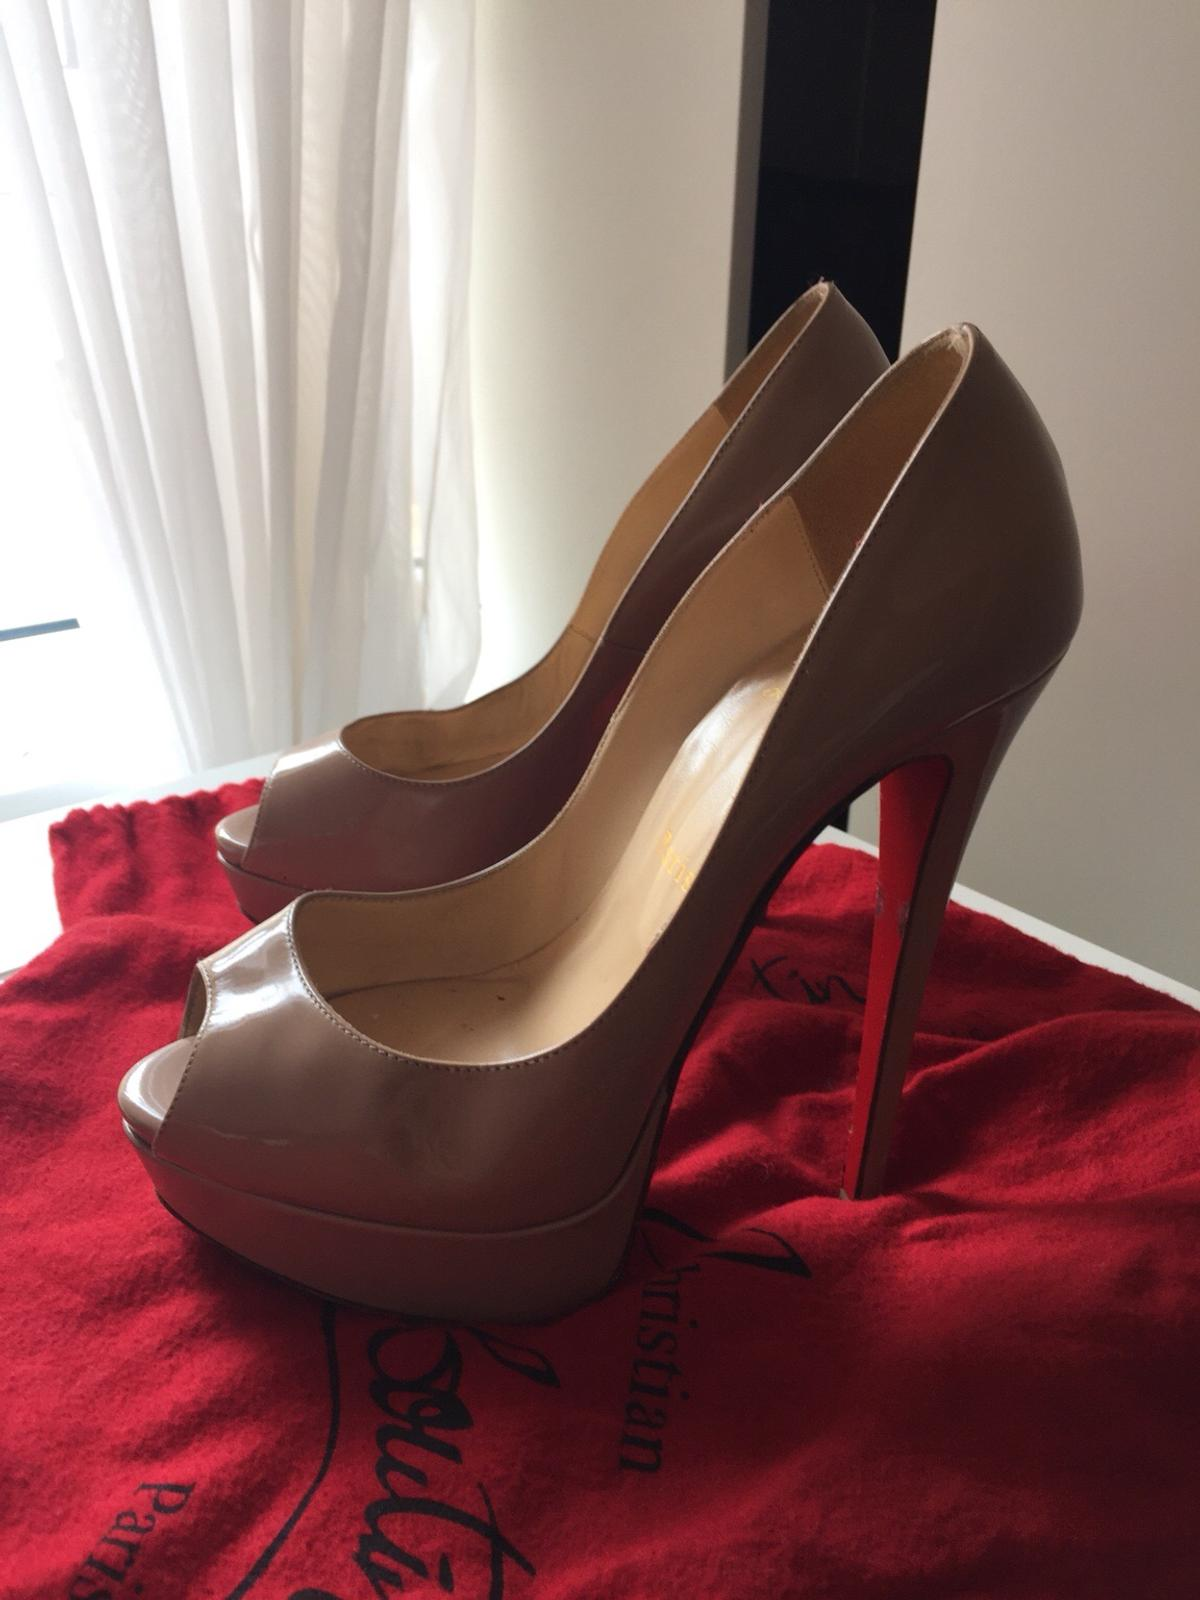 uk store presenting new arrival louboutin sky high heels nude in W1T Westminster für 100,00 £ zum ...